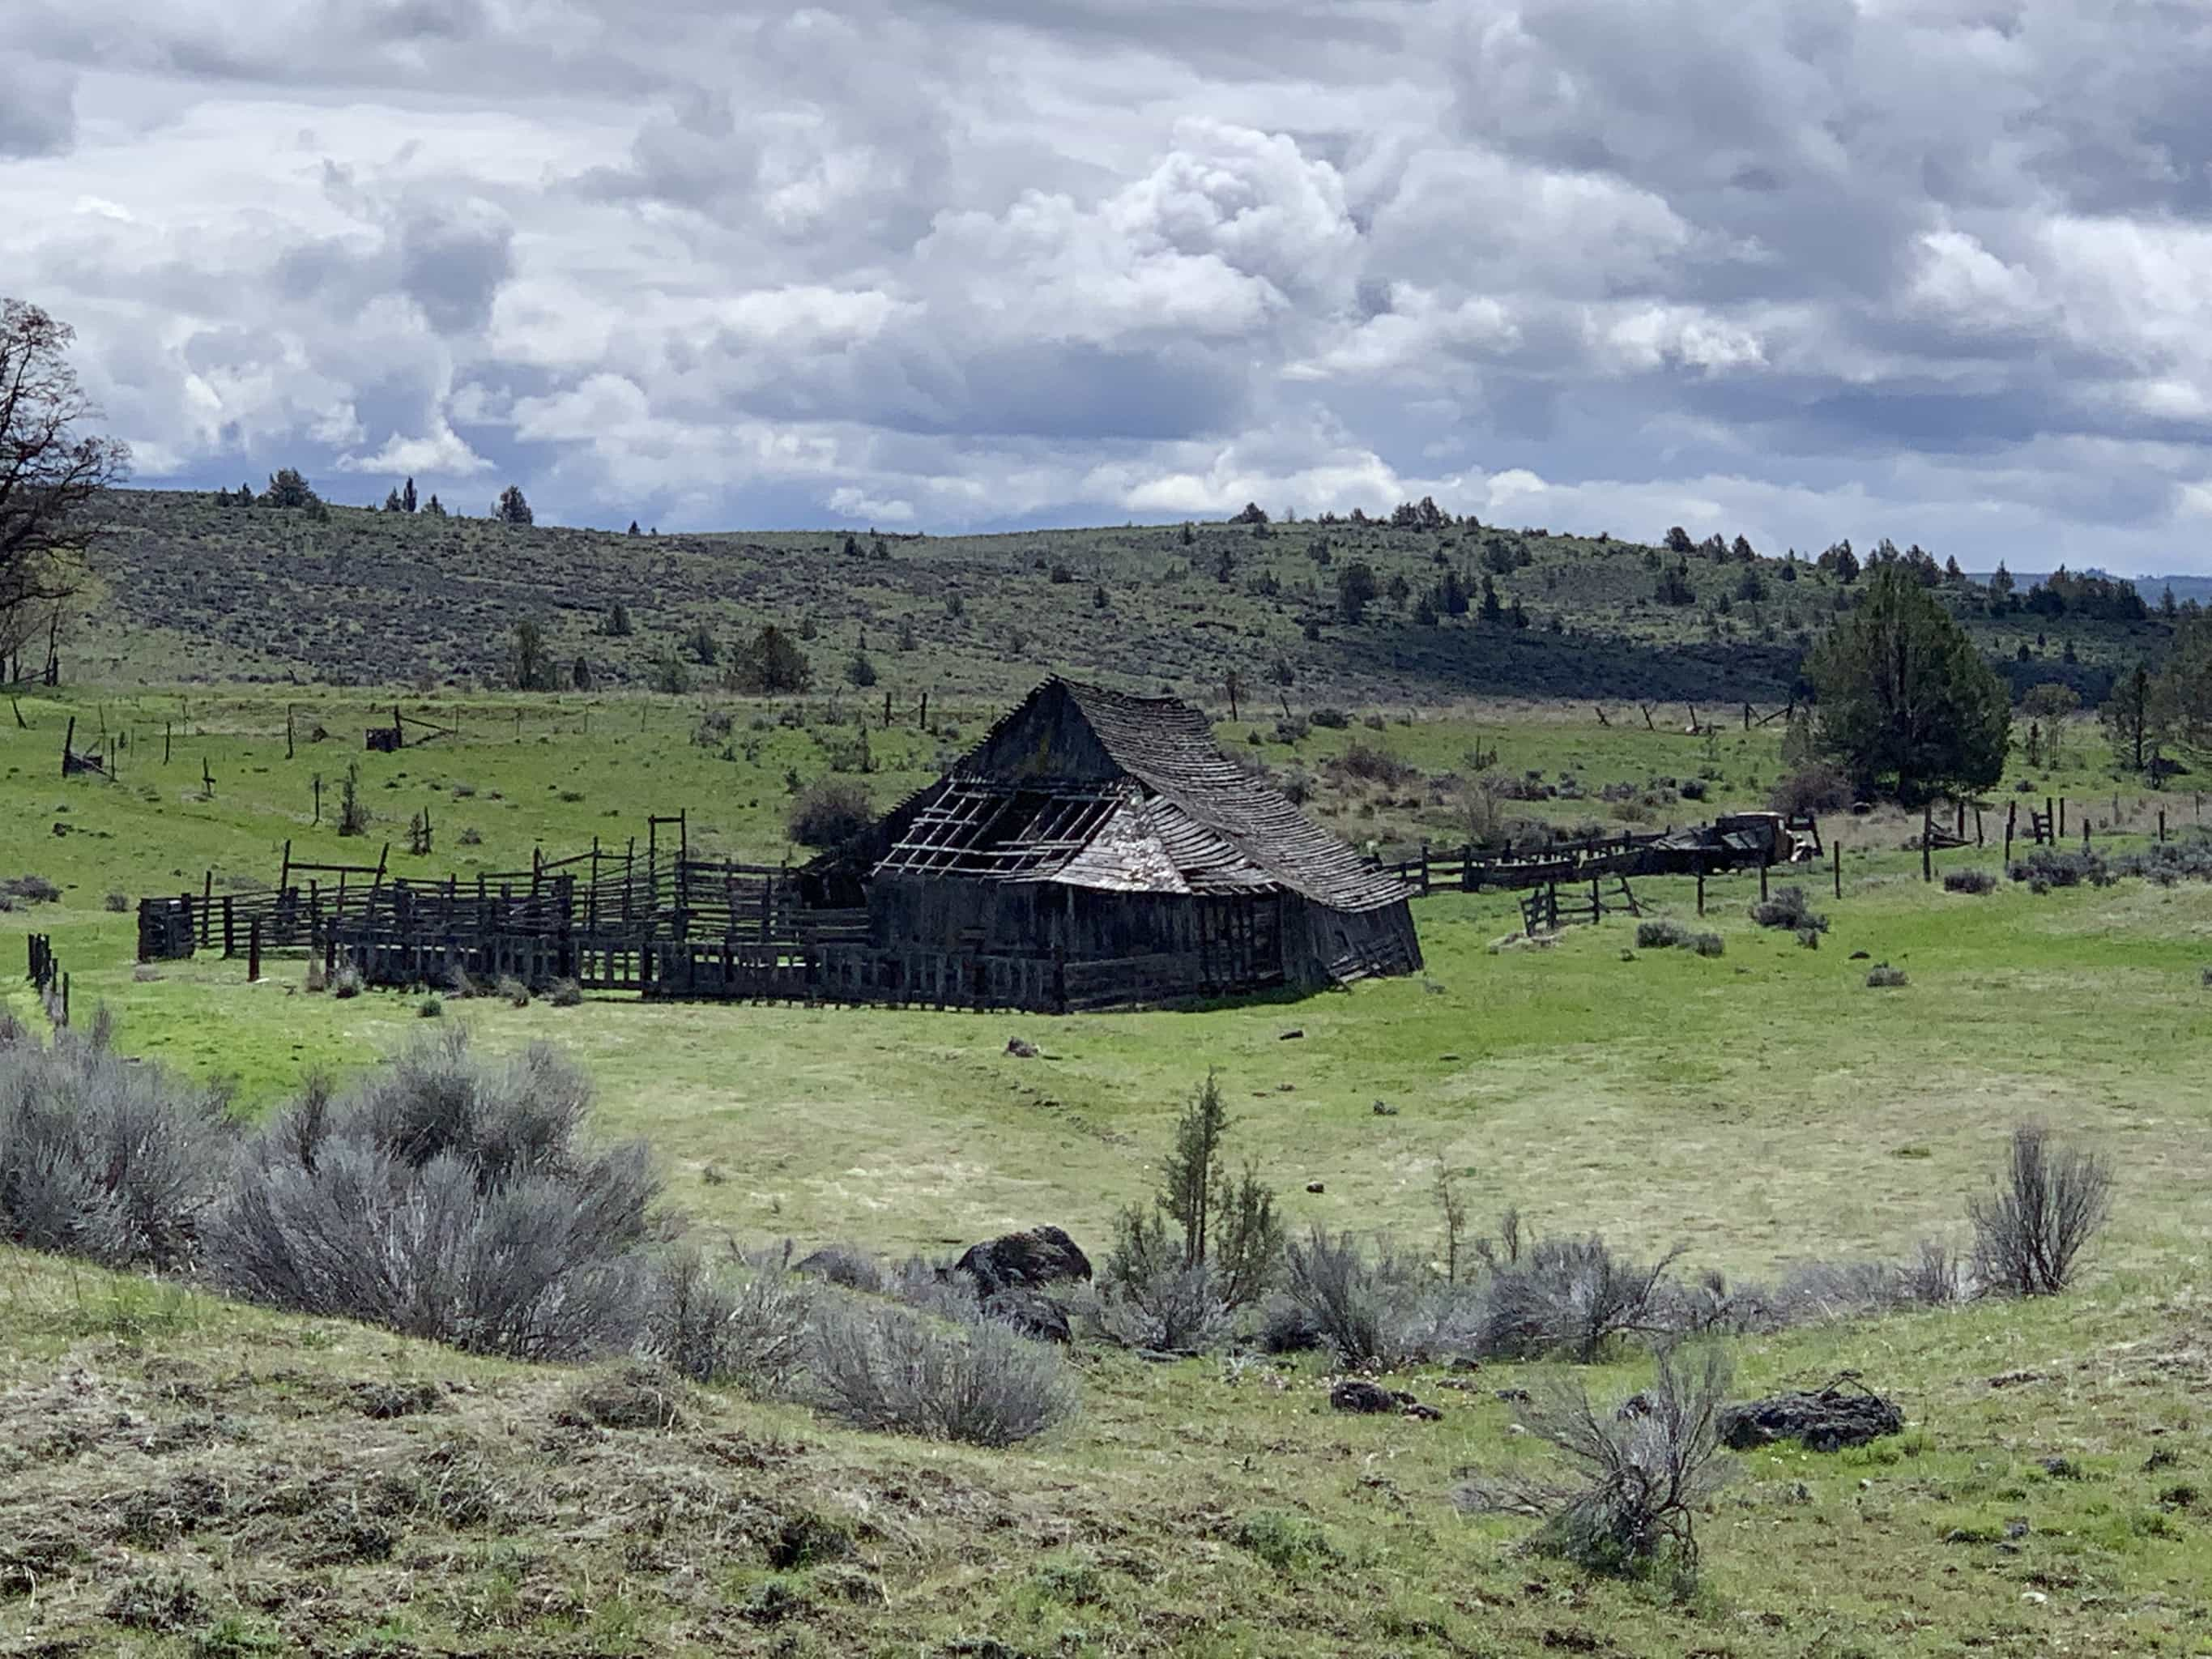 Old ranch house near Tygh Valley / Maupin, Oregon.